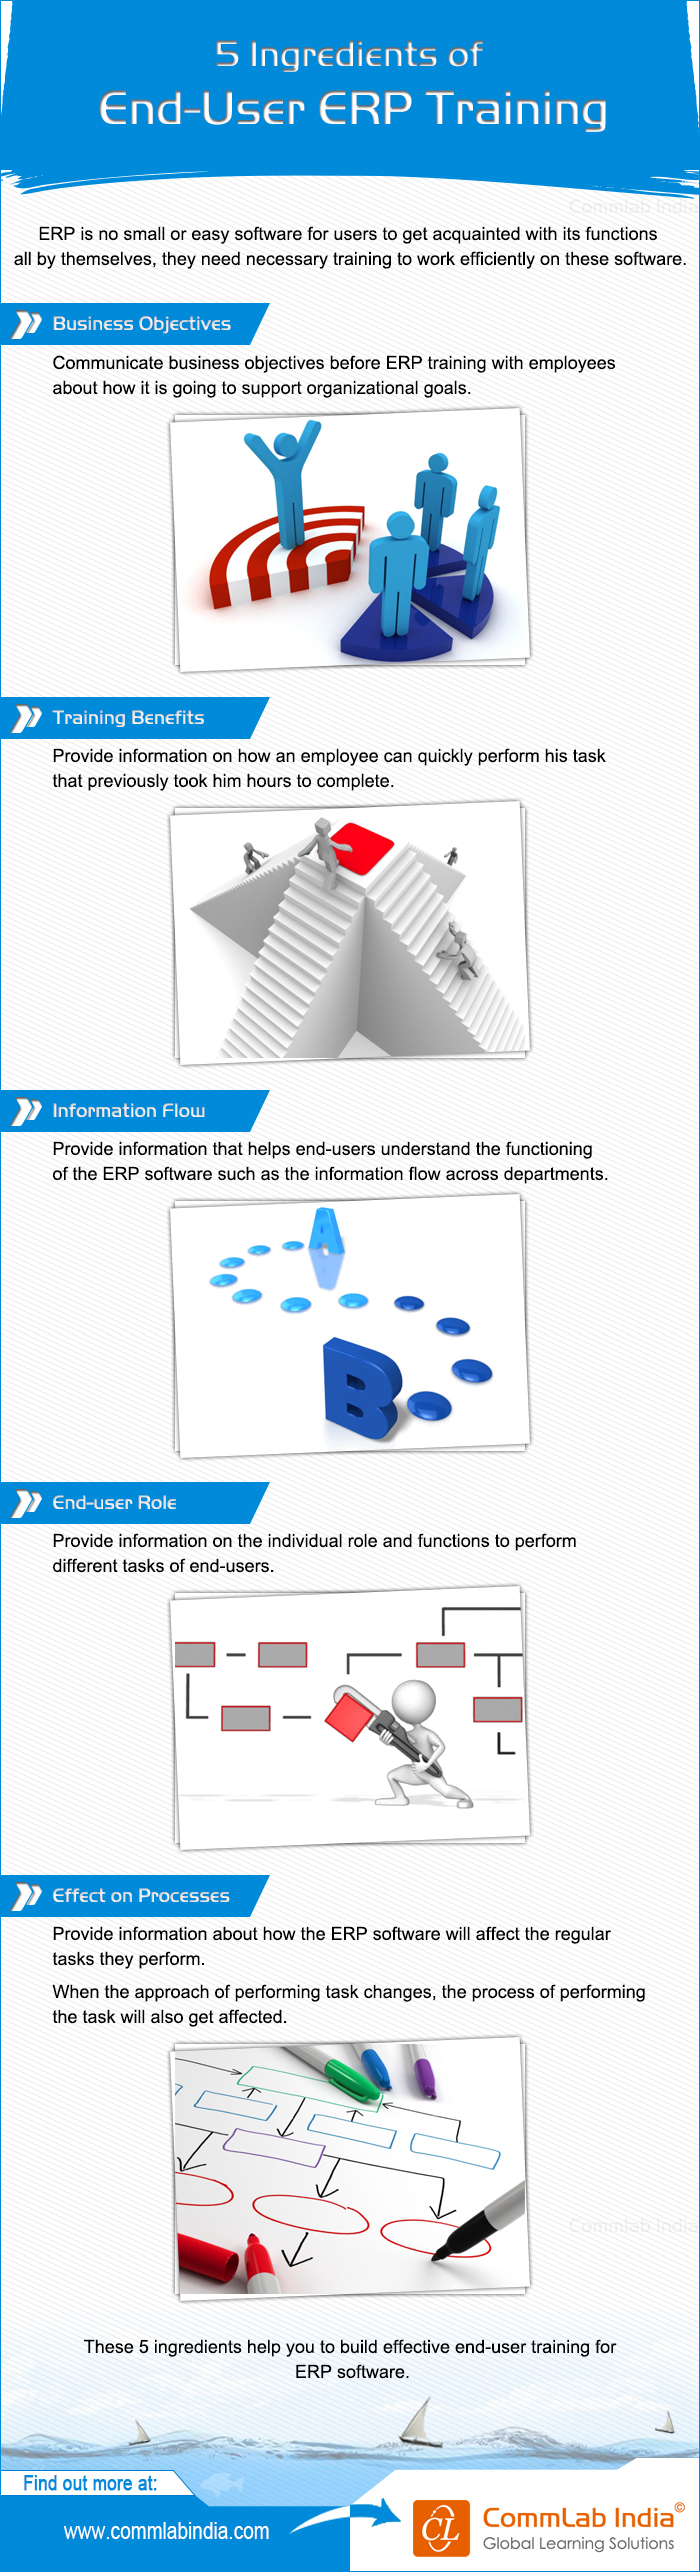 5 Ingredients for End User ERP Training [Infographic]